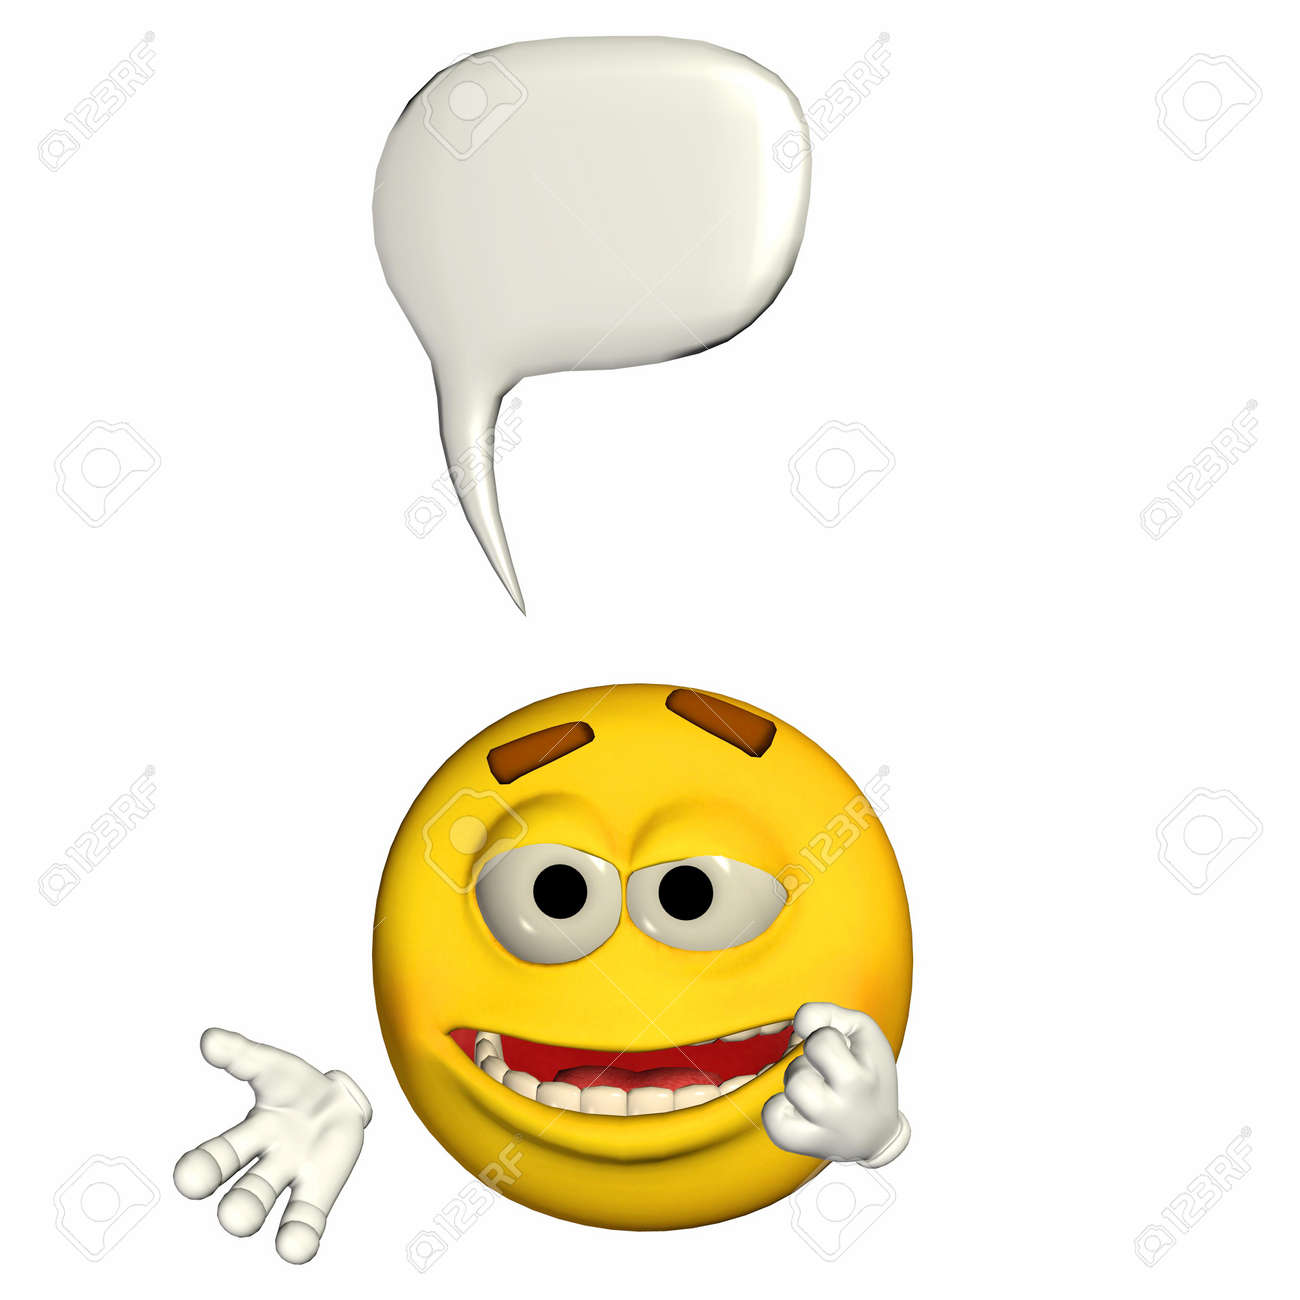 Fancy a light hearted game? - Page 4 12675098-Illustration-of-a-talking-yellow-emoticon-isolated-on-a-white-background-Stock-Illustration